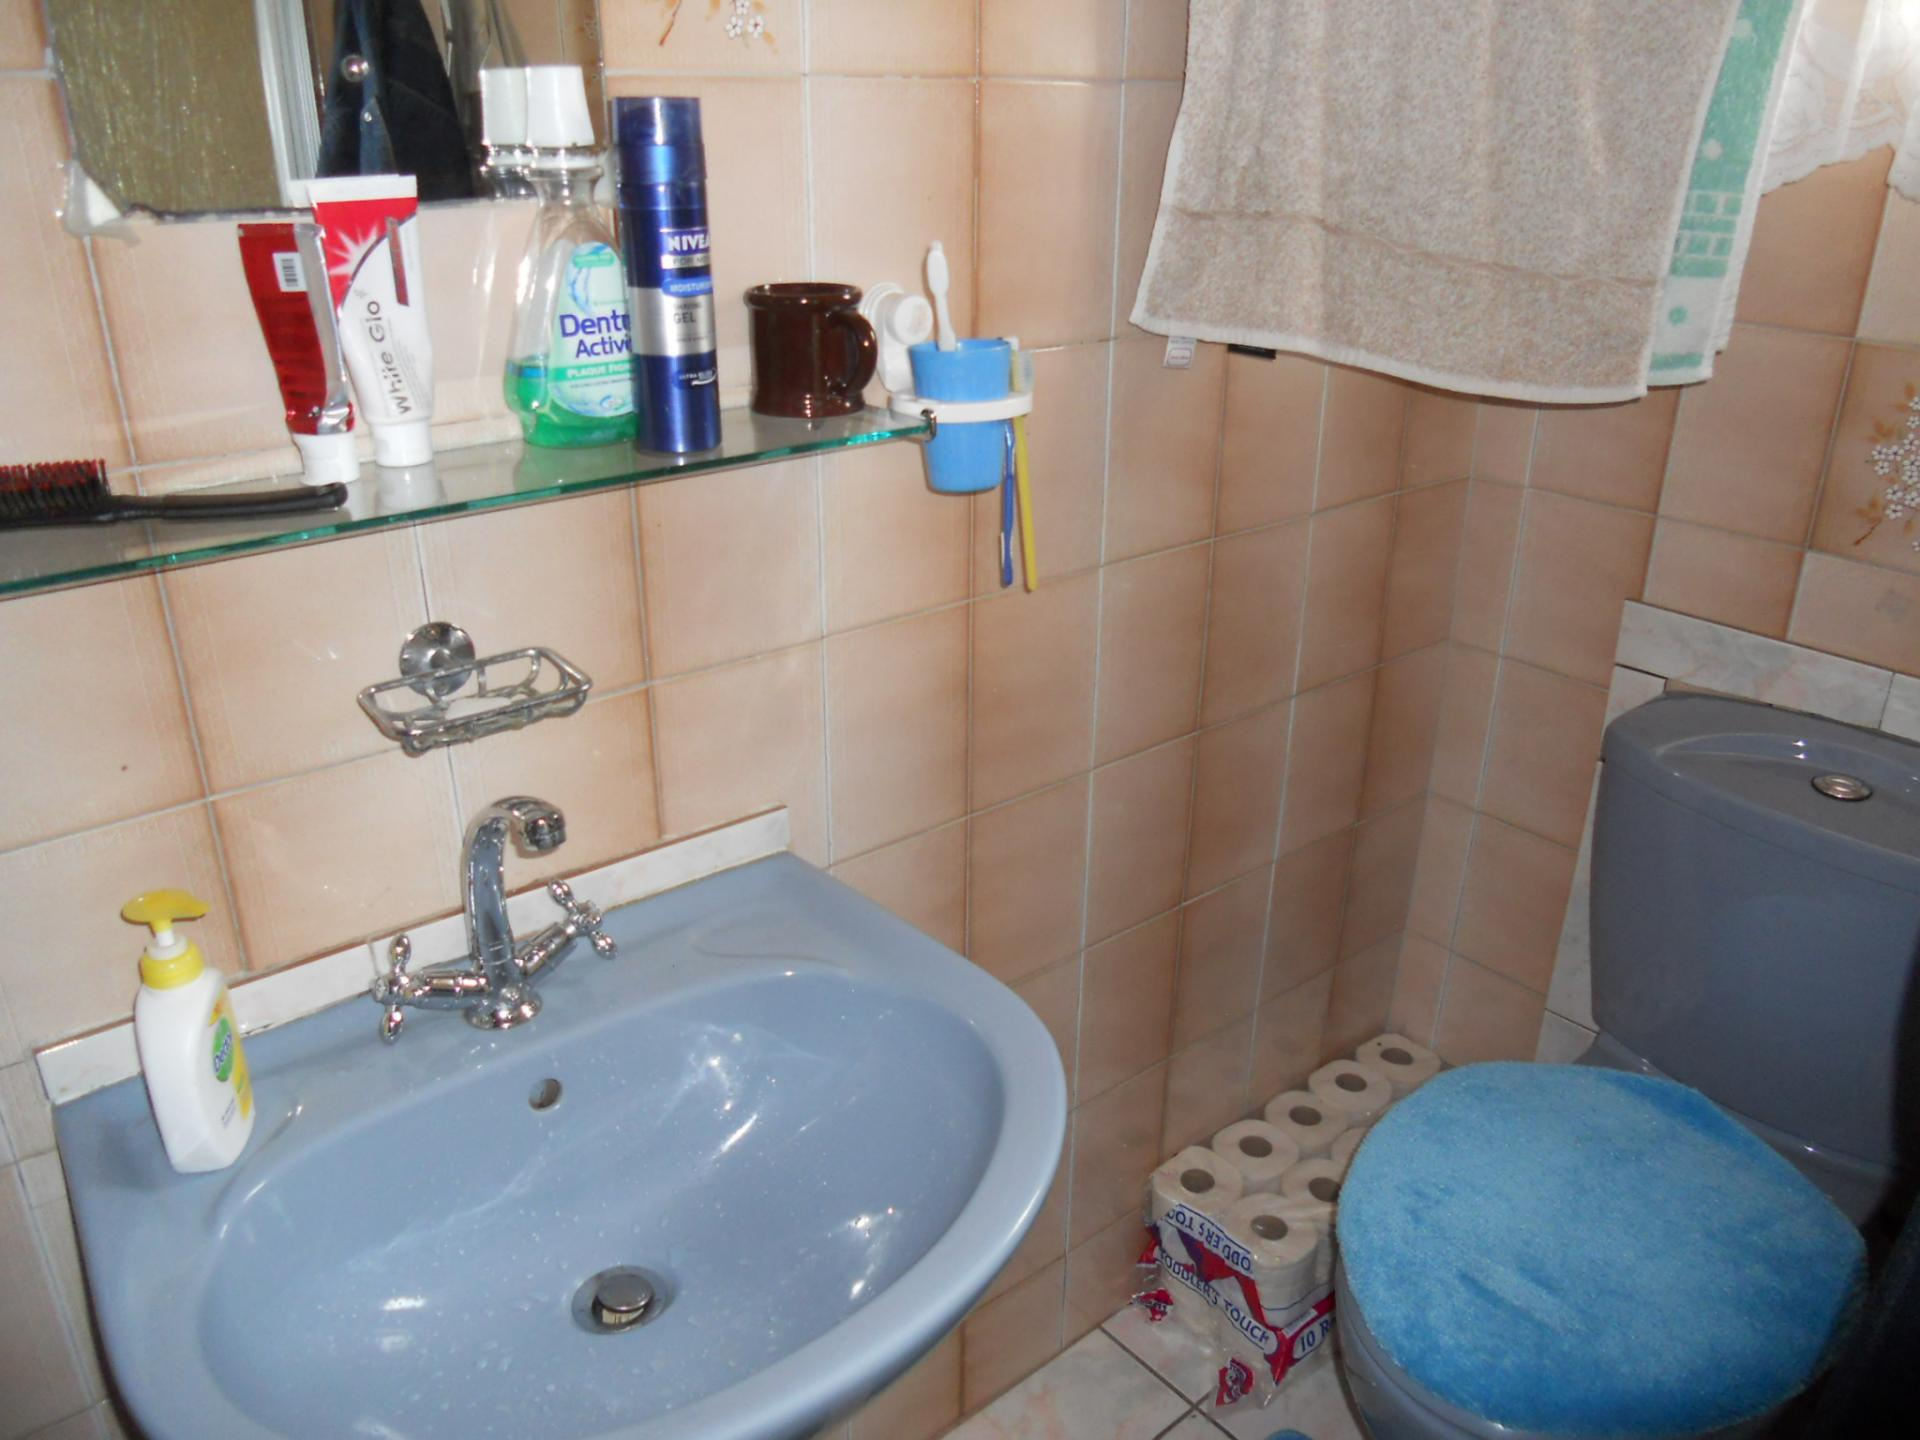 Bathroom Cabinets Kzn myroof - 3 bedroom house for sale for sale in chatsworth - kzn